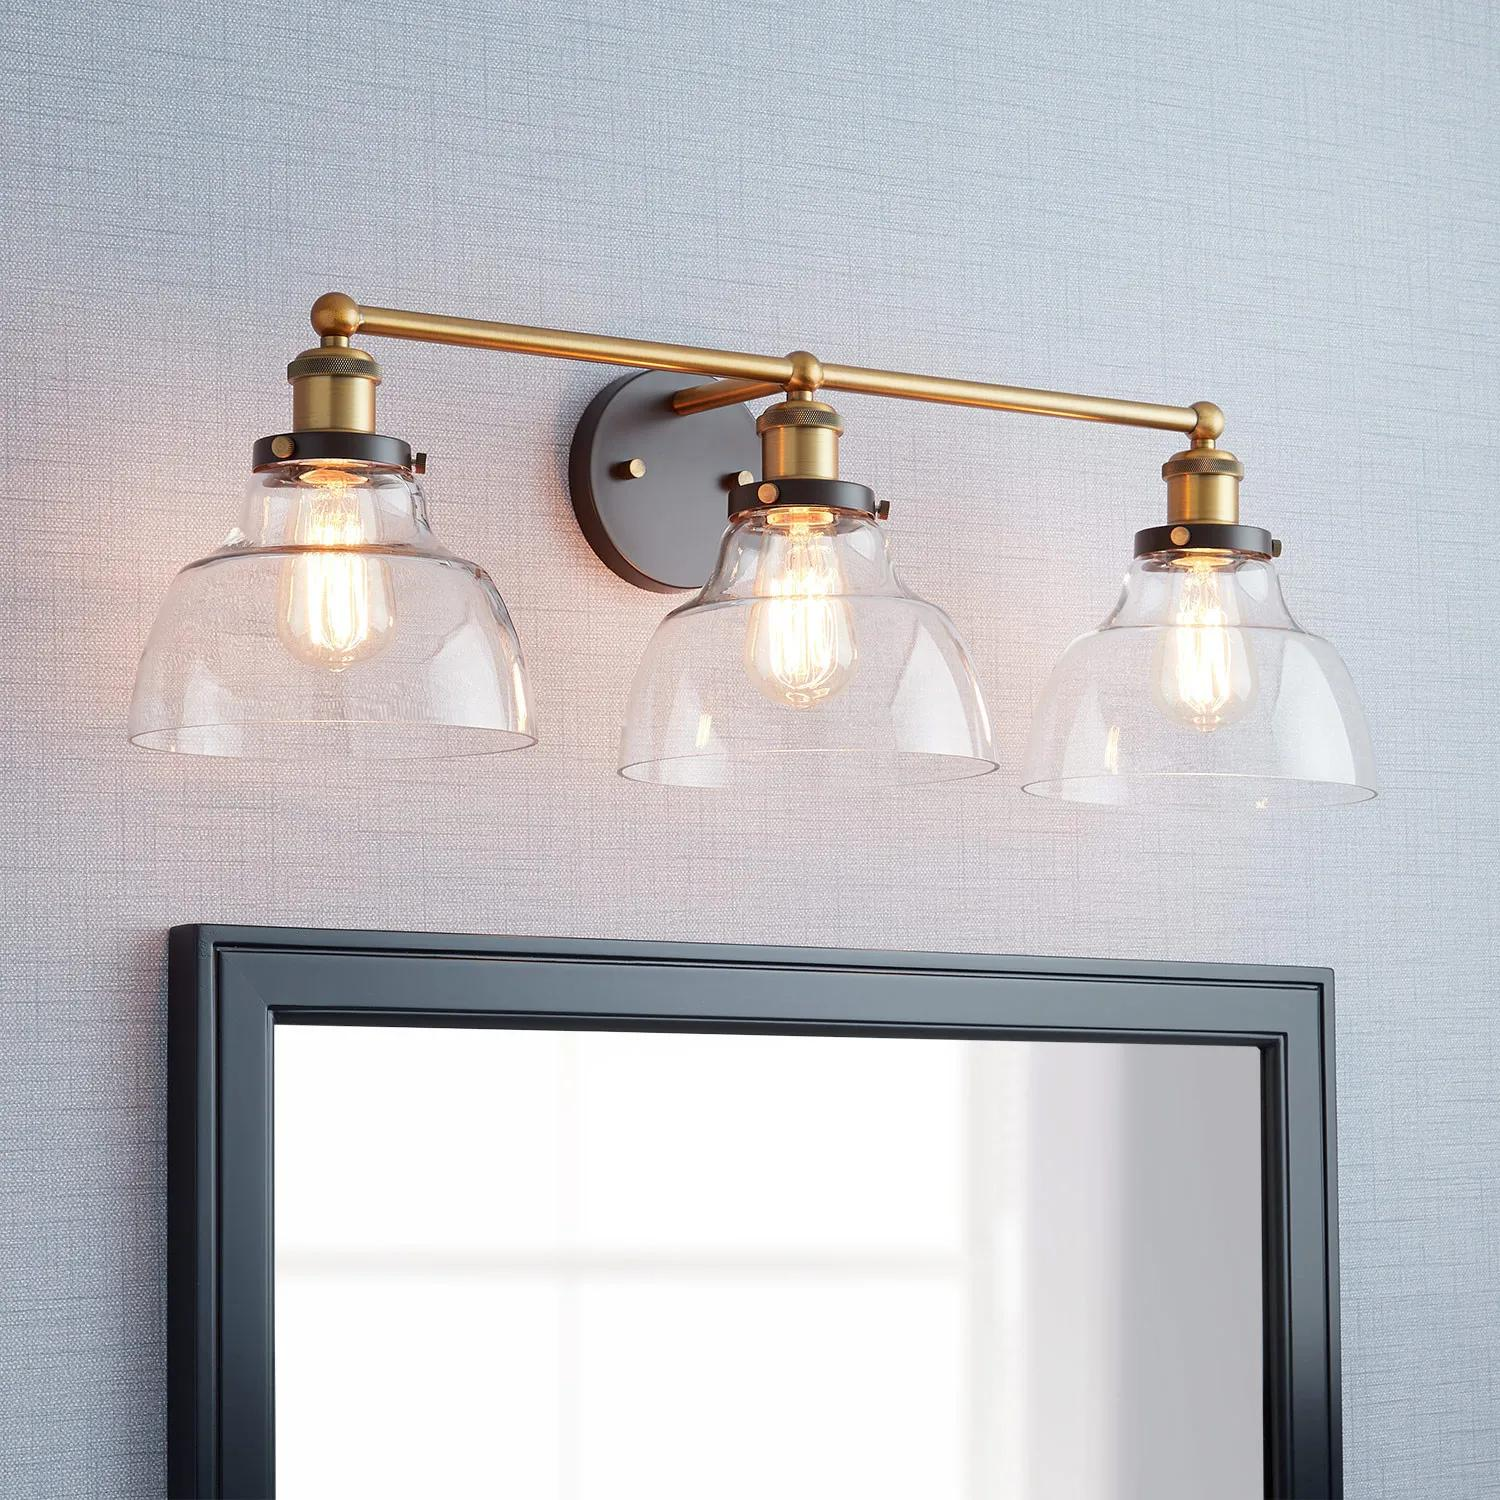 Mooretown 3 Light Vanity Light Bathroom Vanity Lighting Lighting